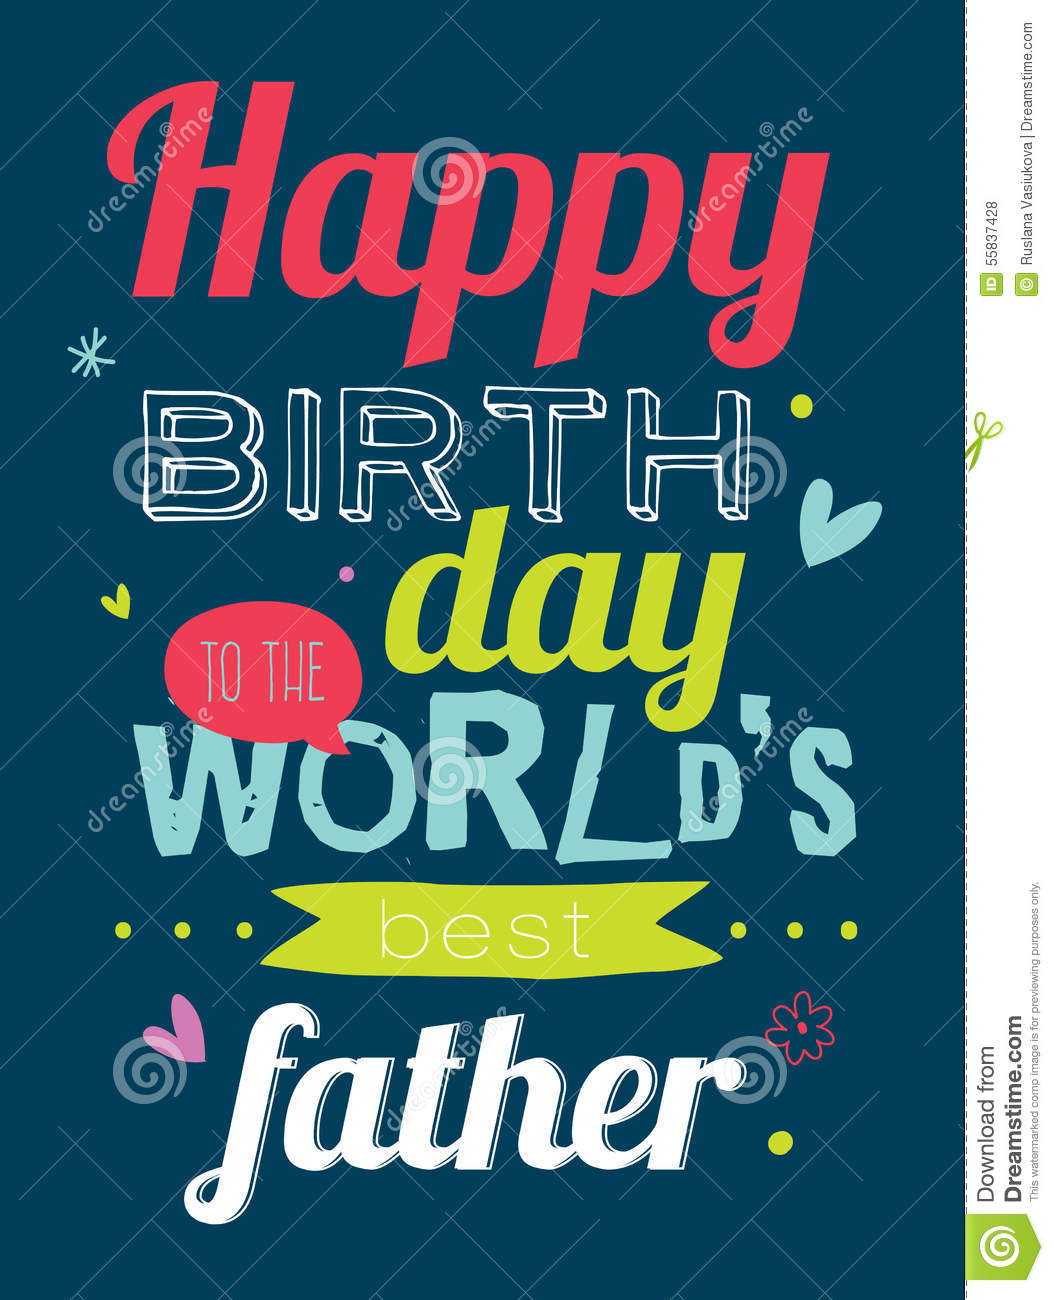 B day poster designs - Happy Birthday To Best Father